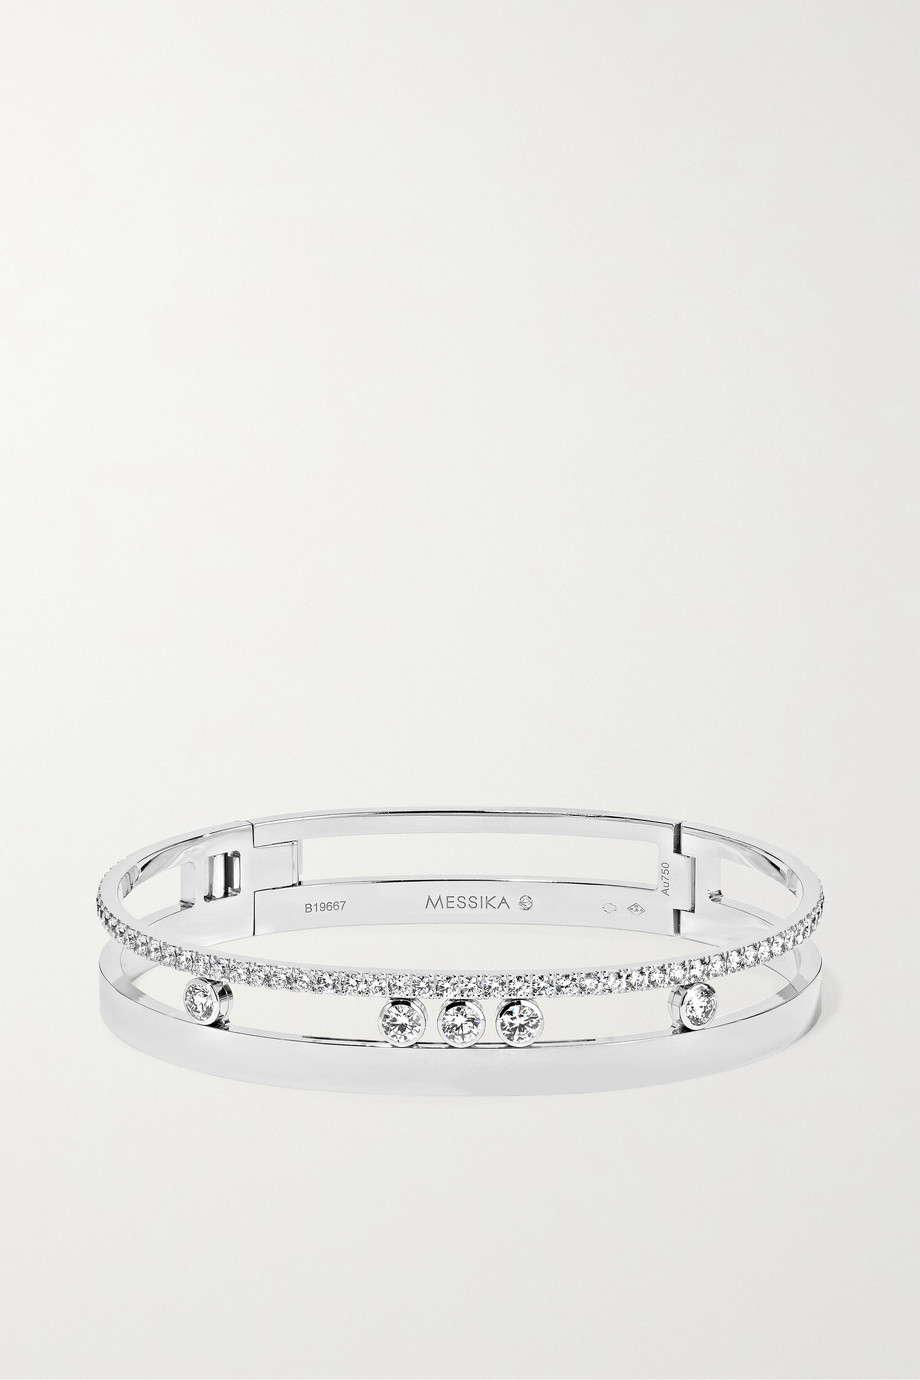 Messika Bracelet en or blanc 18 carats et diamants Move Romane